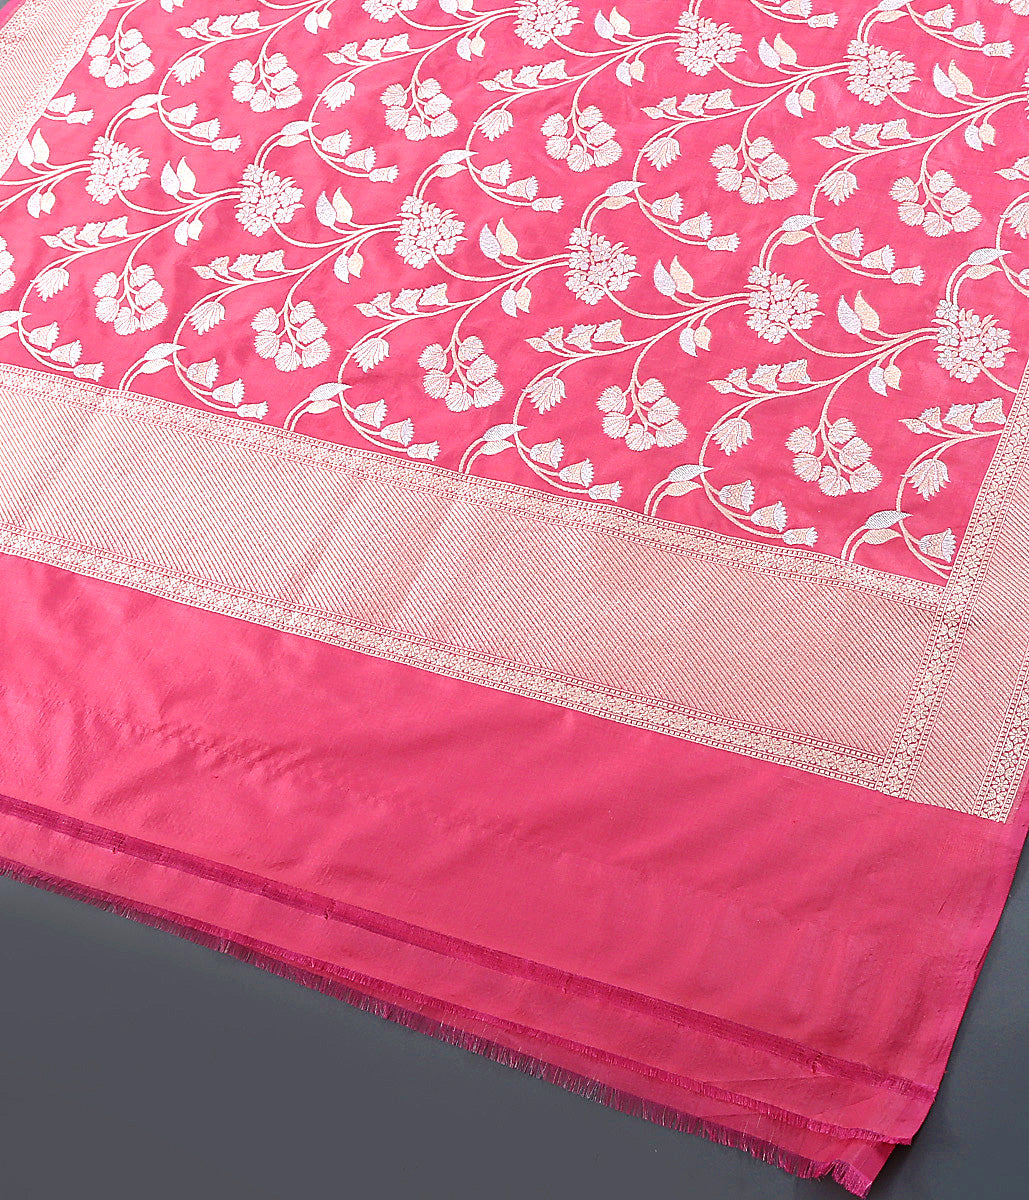 Pink dual tone Katan Silk Dupatta with Gold and Silver Jaal